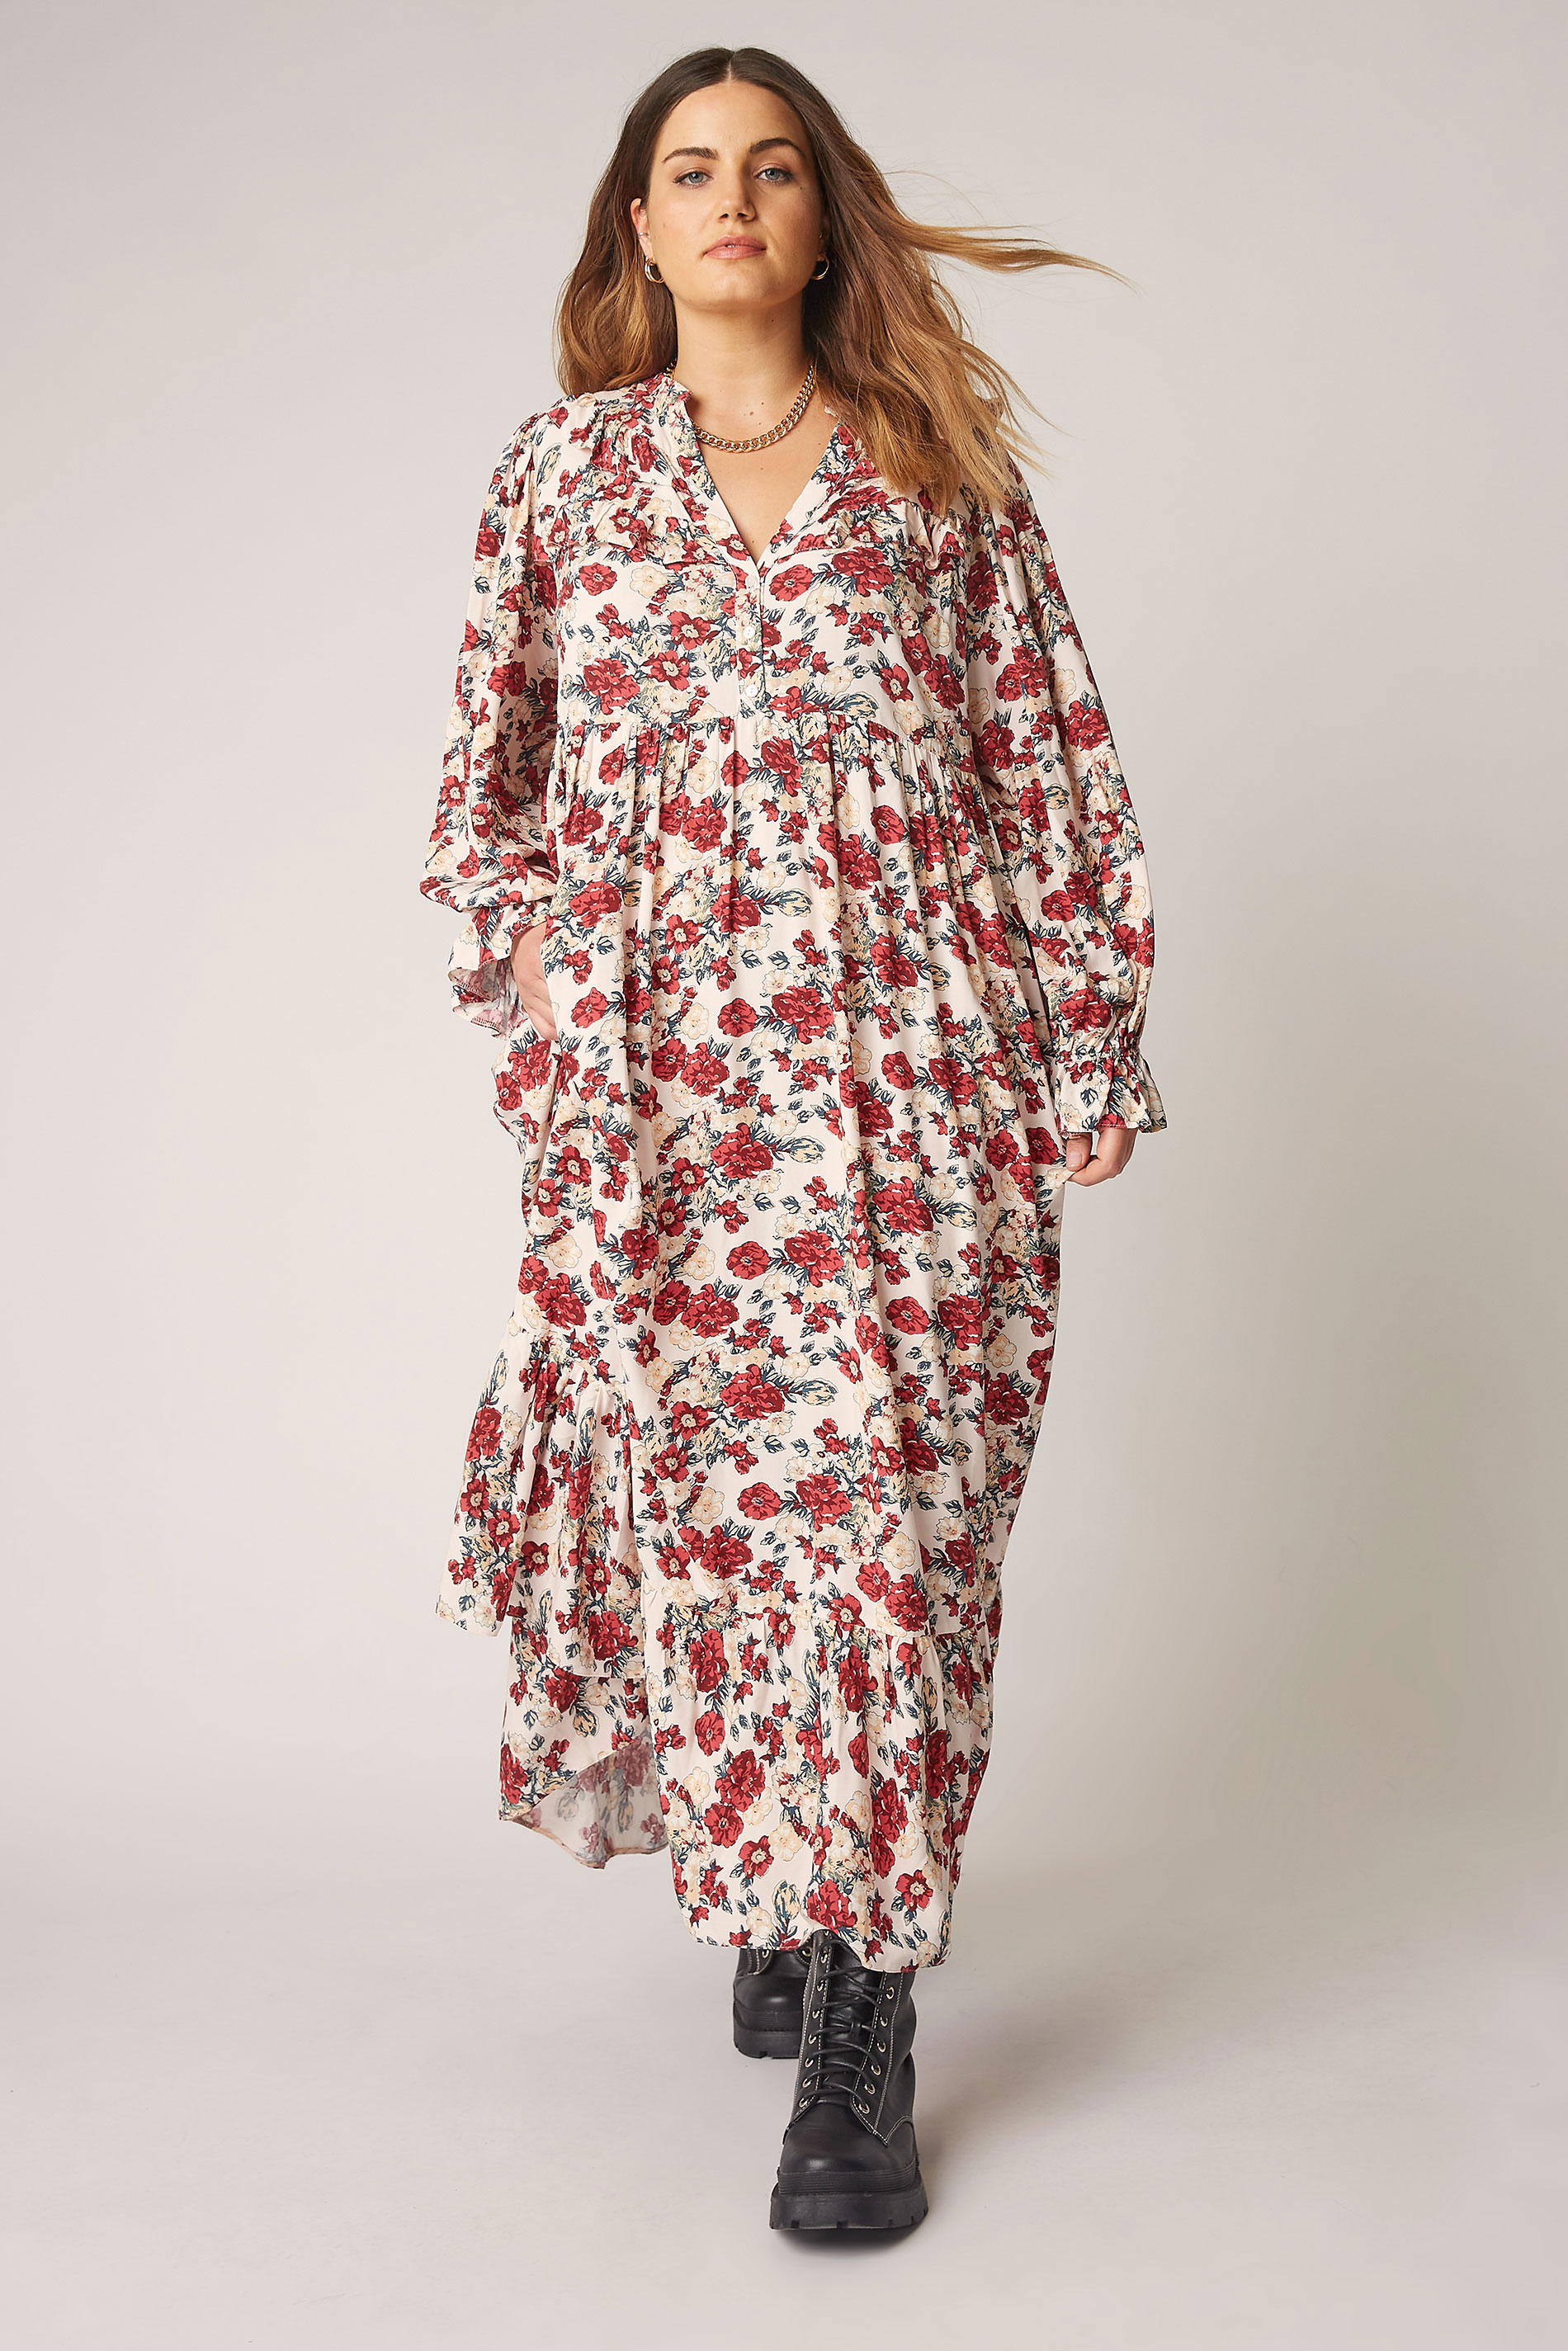 THE LIMITED EDIT Cream Floral Frill Smock Maxi Dress_A.jpg